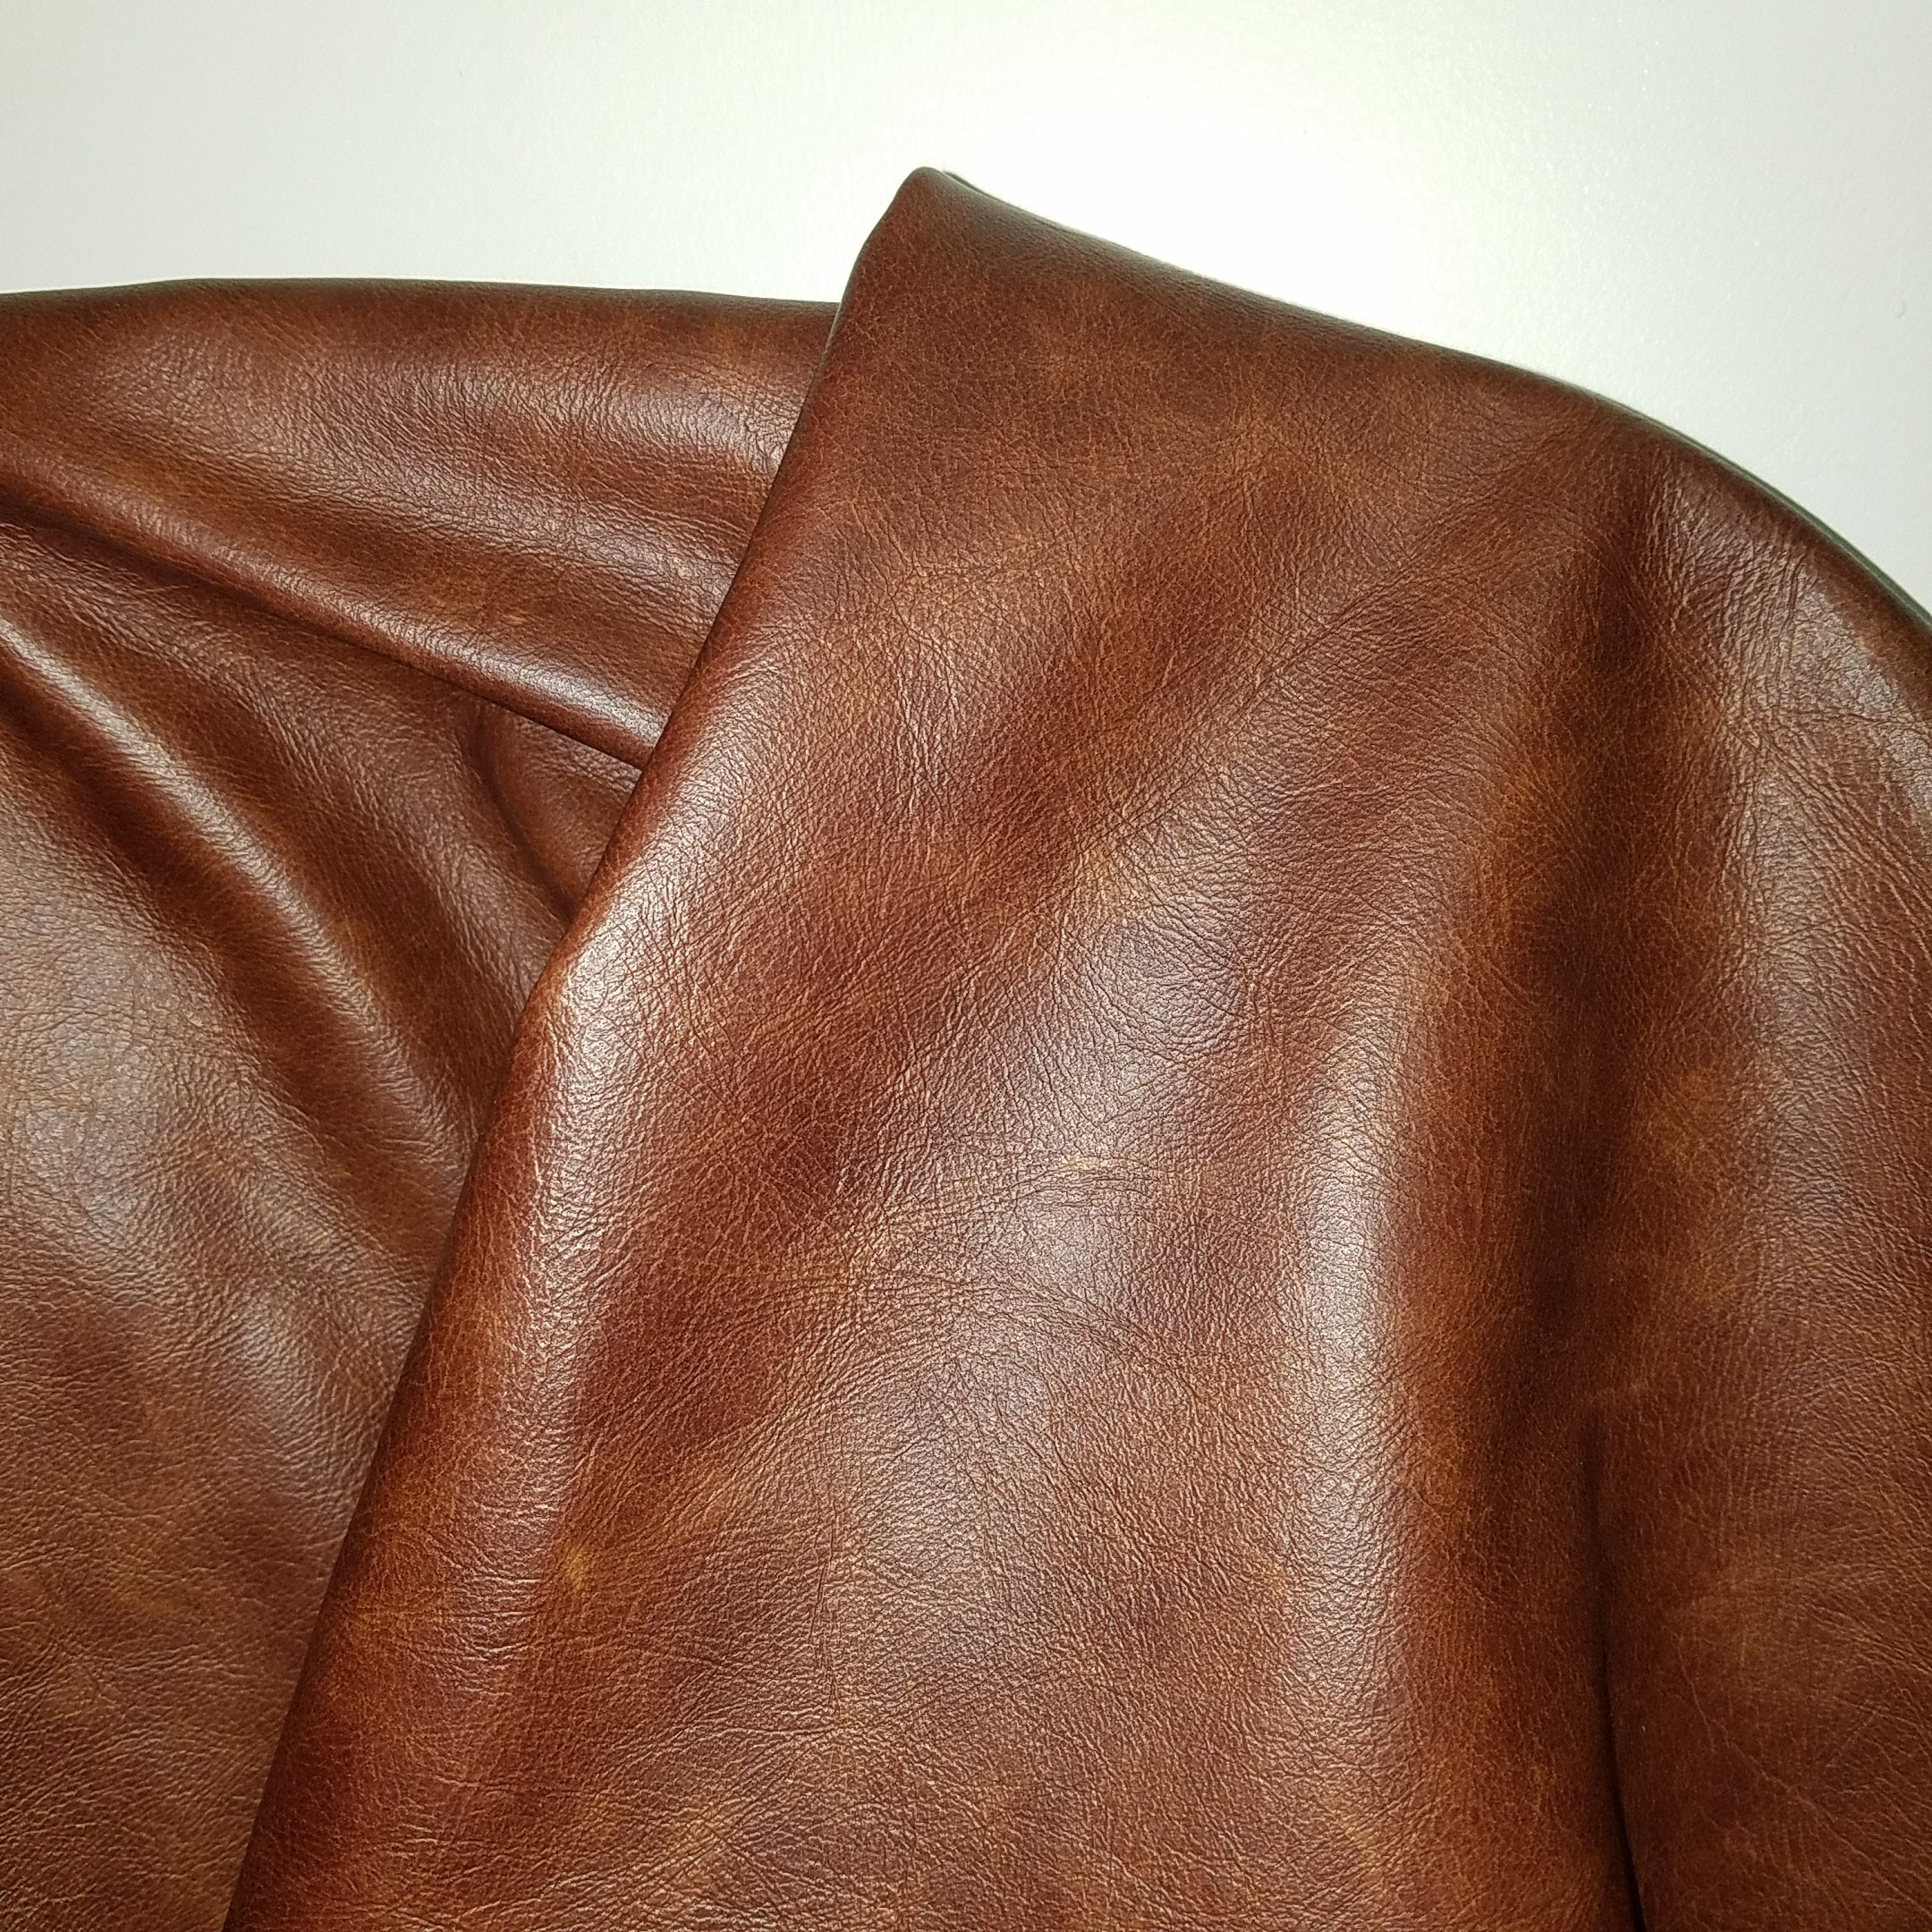 NAT Leathers Brown Tan Cognac 22 to 24 Square Feet (22-24 Sq.ft (32''x55'')) Weekender Two Tone Soft Upholstery Chap Italian Cowhide Genuine Leather Hide Large Cow Skin